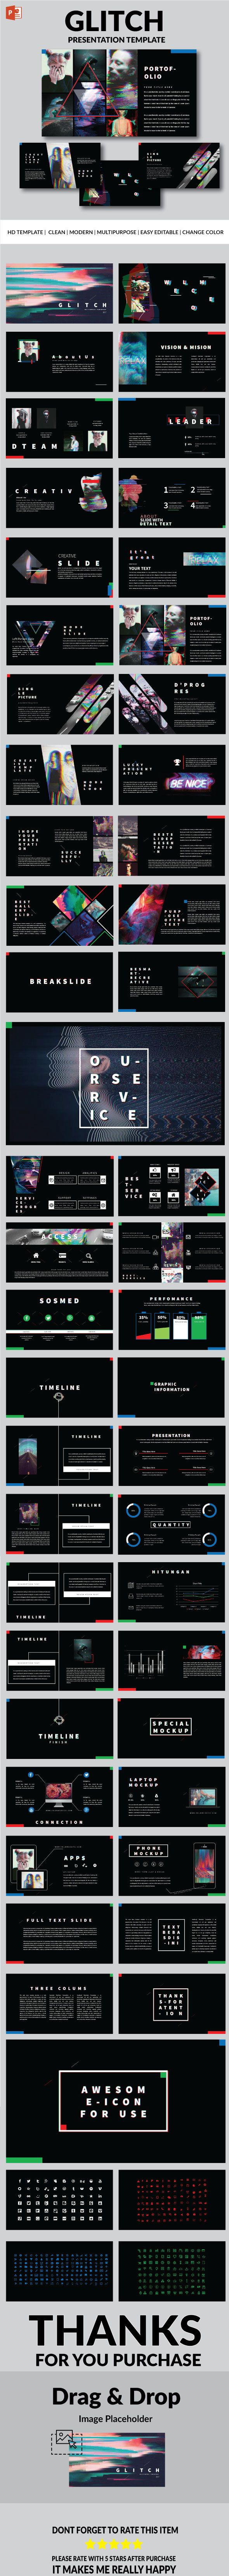 Glitch - Multipurpose PowerPoint Template | PowerPoint Templates